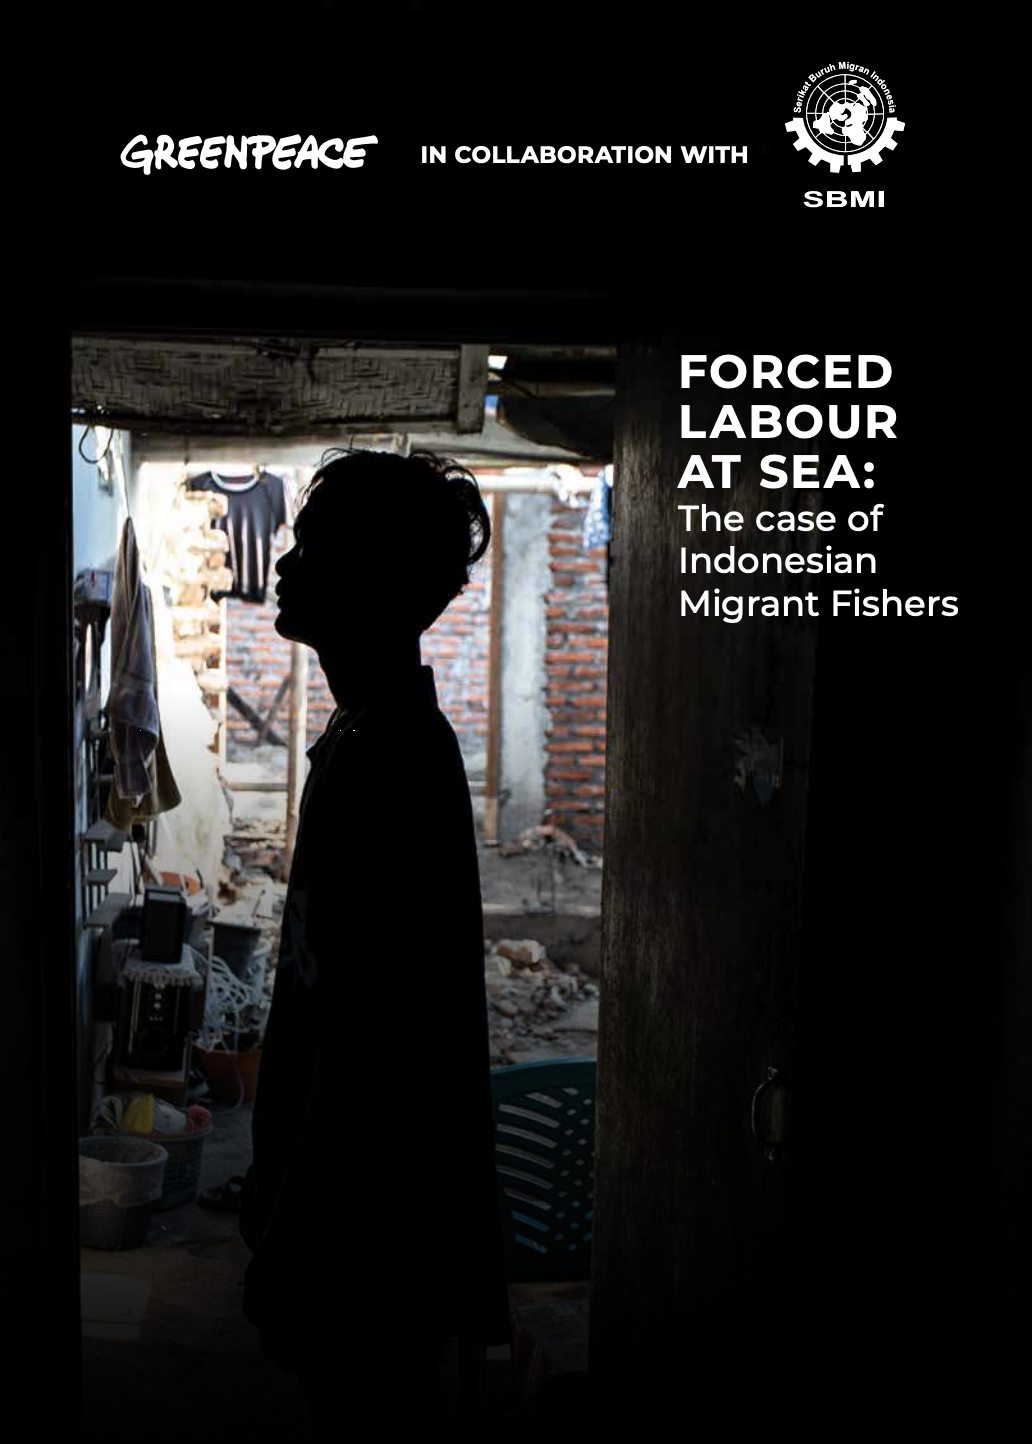 Forced Labour at Sea: The case of Indonesian Migrant Fishers